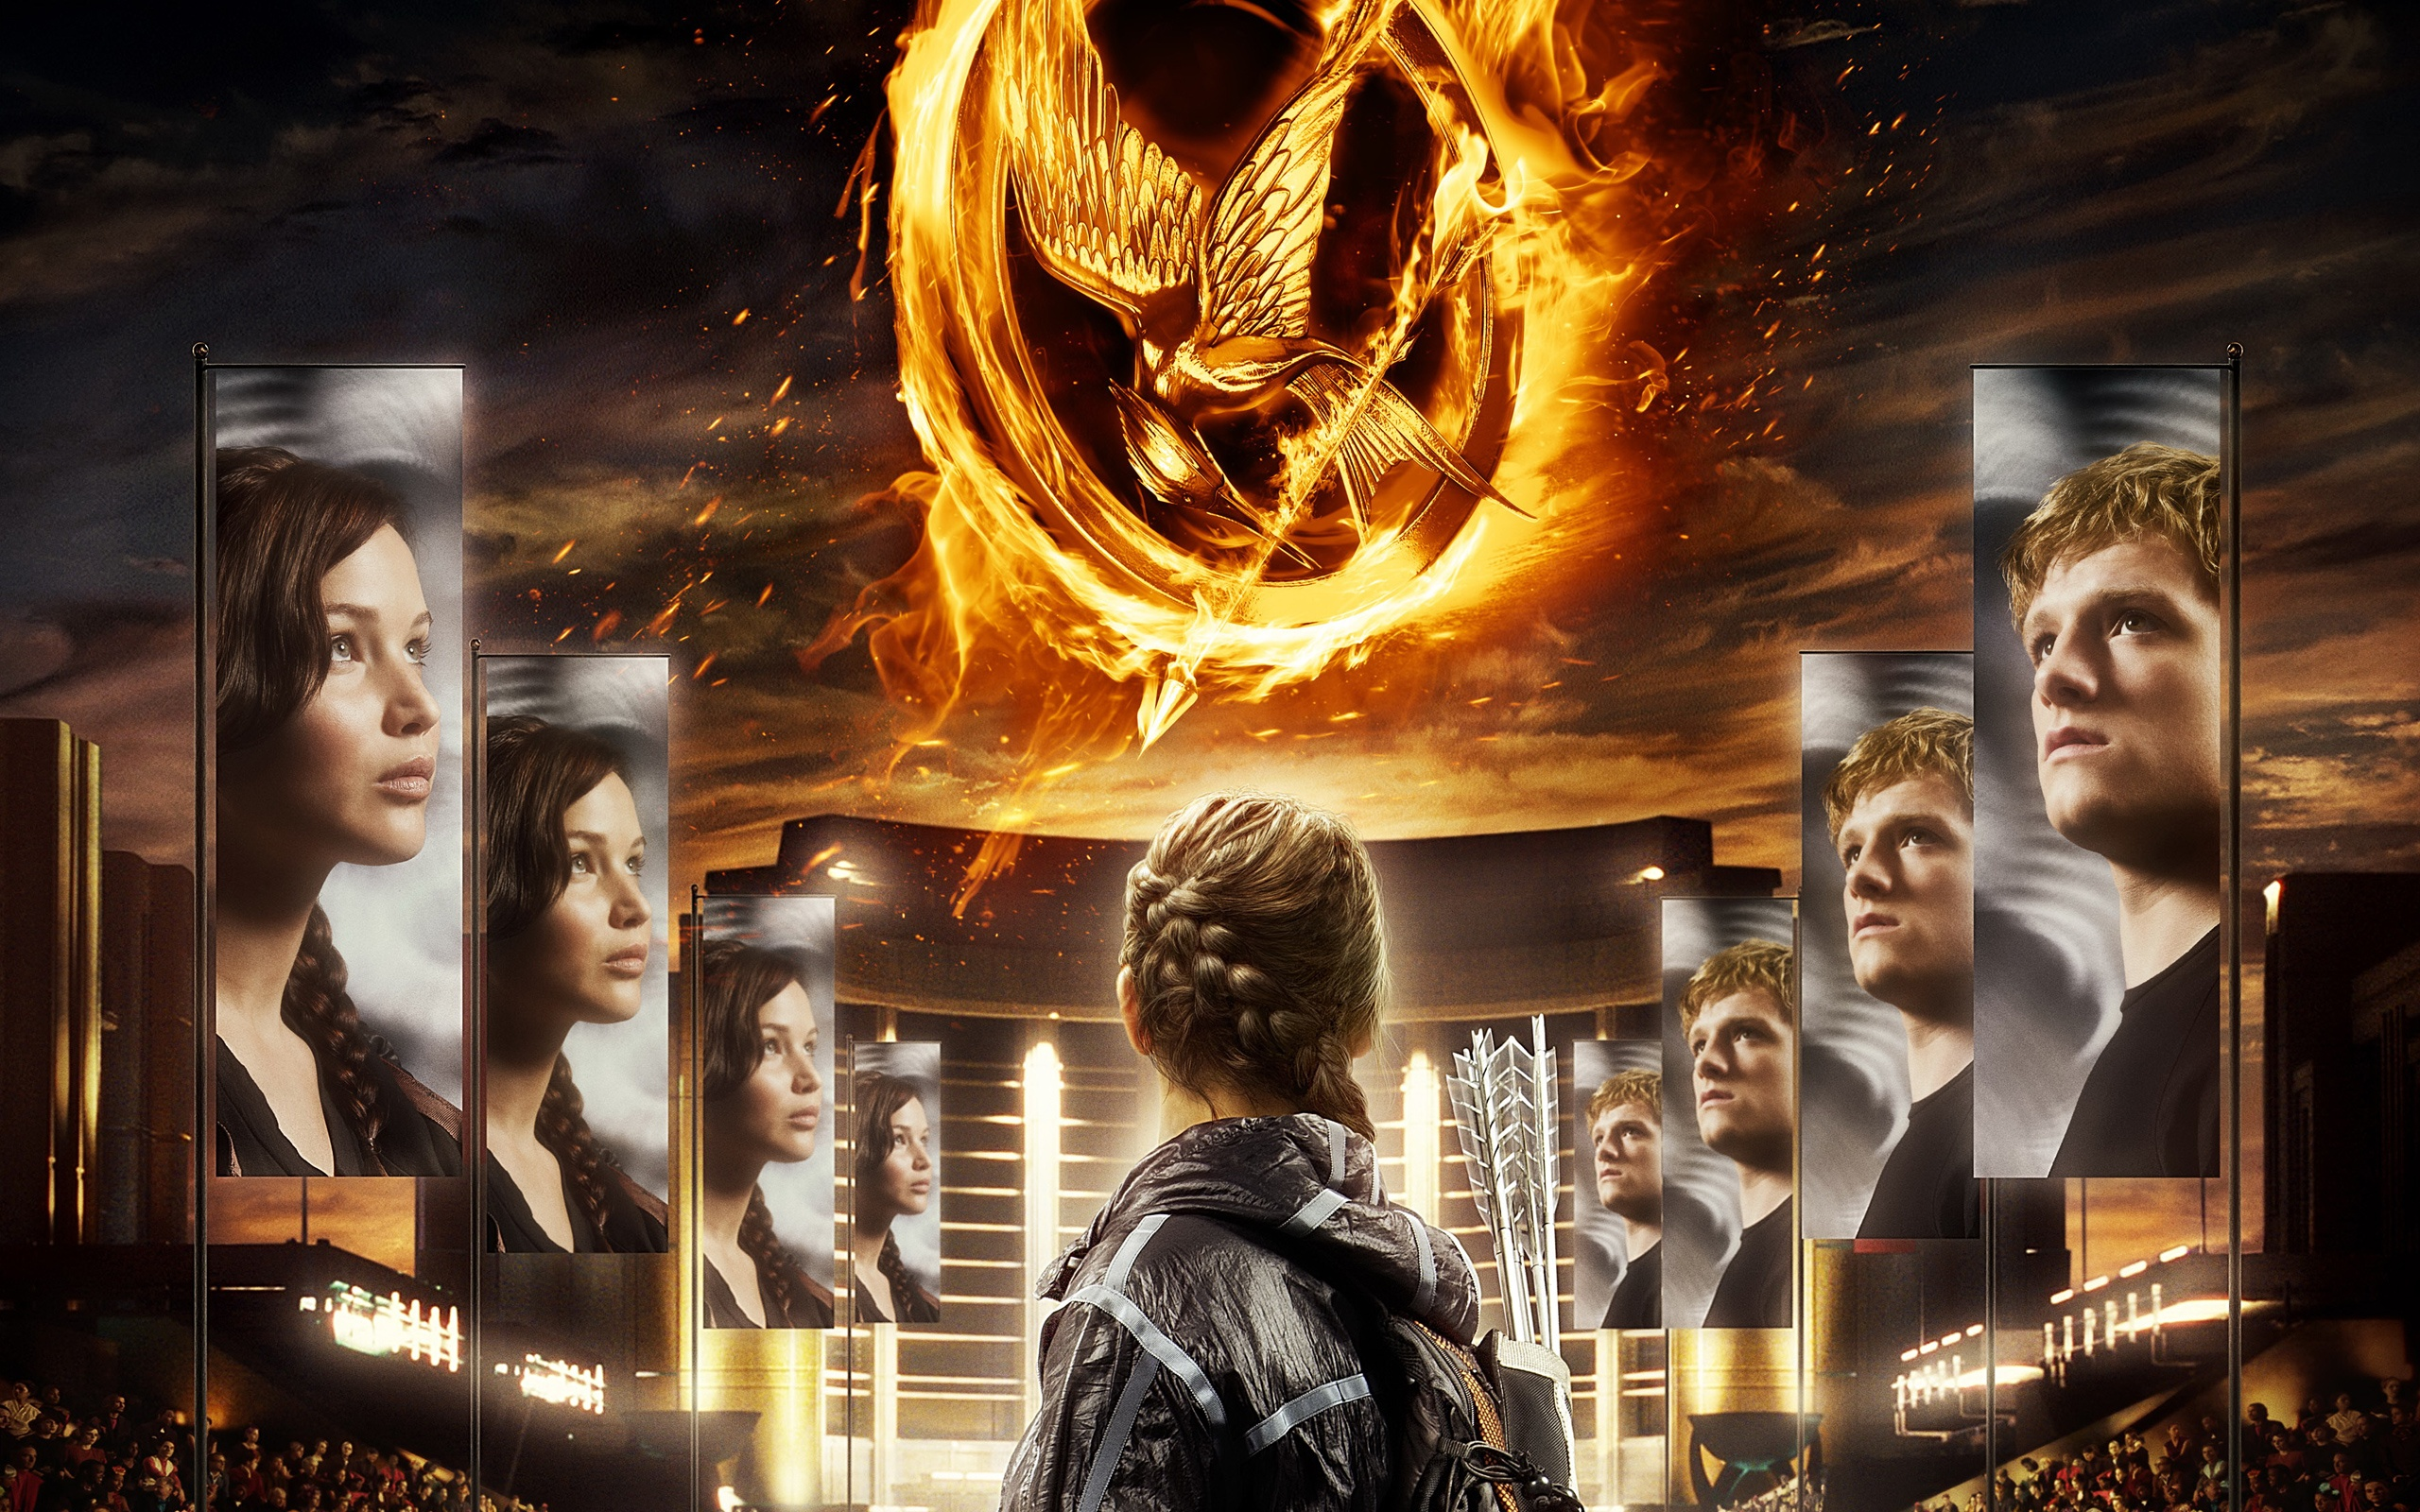 The Hunger Games 2012 wallpaper - 2560x1600